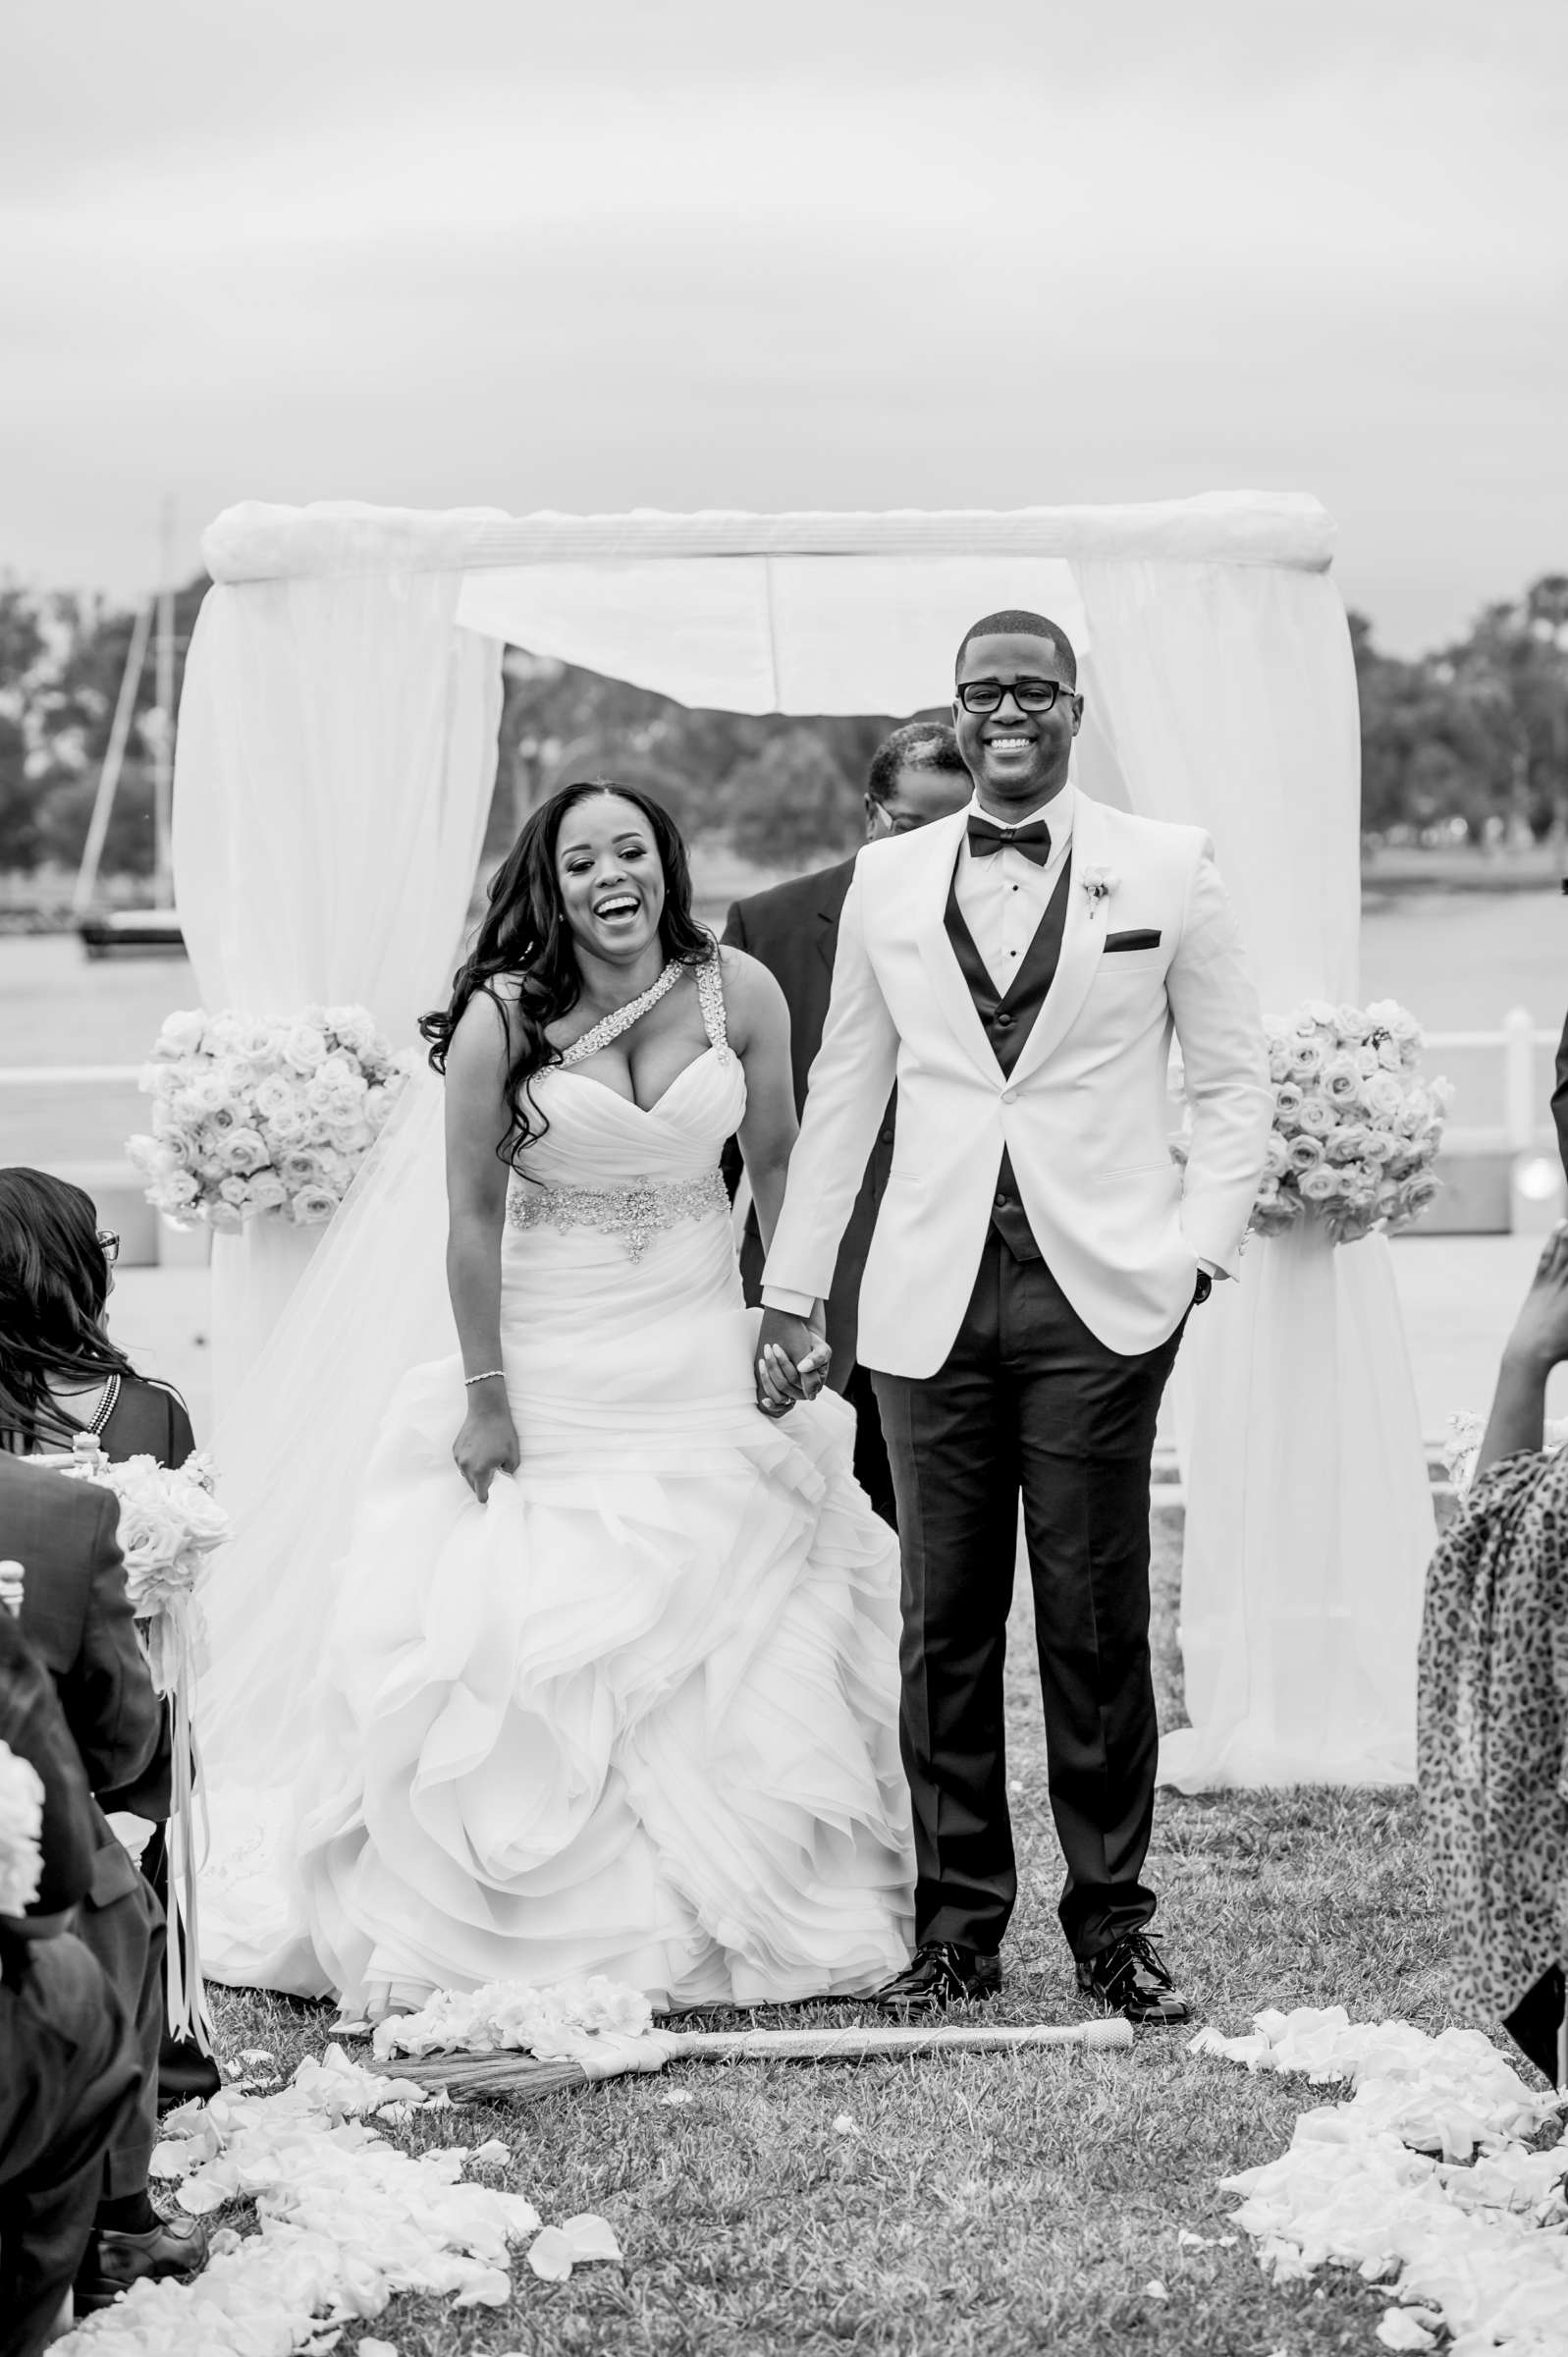 Coronado Community Center Wedding coordinated by First Comes Love Weddings & Events, Nikia and Charles Wedding Photo #56 by True Photography